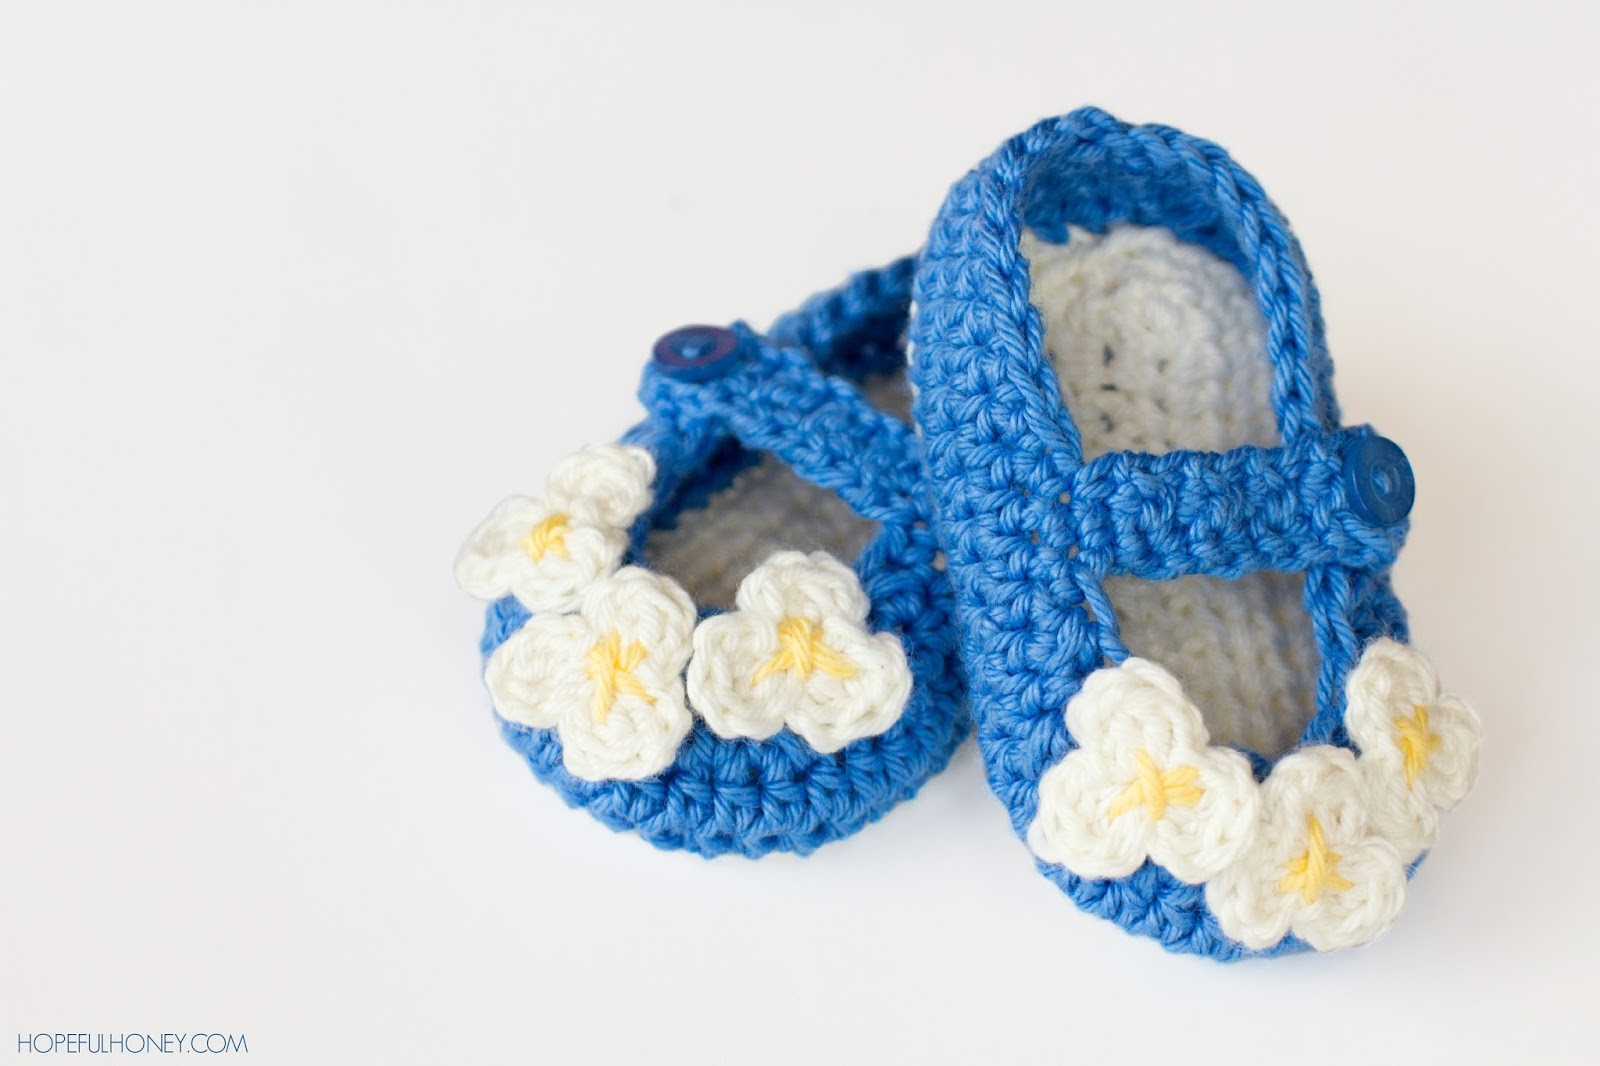 Crochet Baby Booties Best Of Vintage Mary Jane Baby Booties Free Pattern and Guide Of Crochet Baby Booties Fresh Crochet Baby Mary Jane Booties Free Patterns